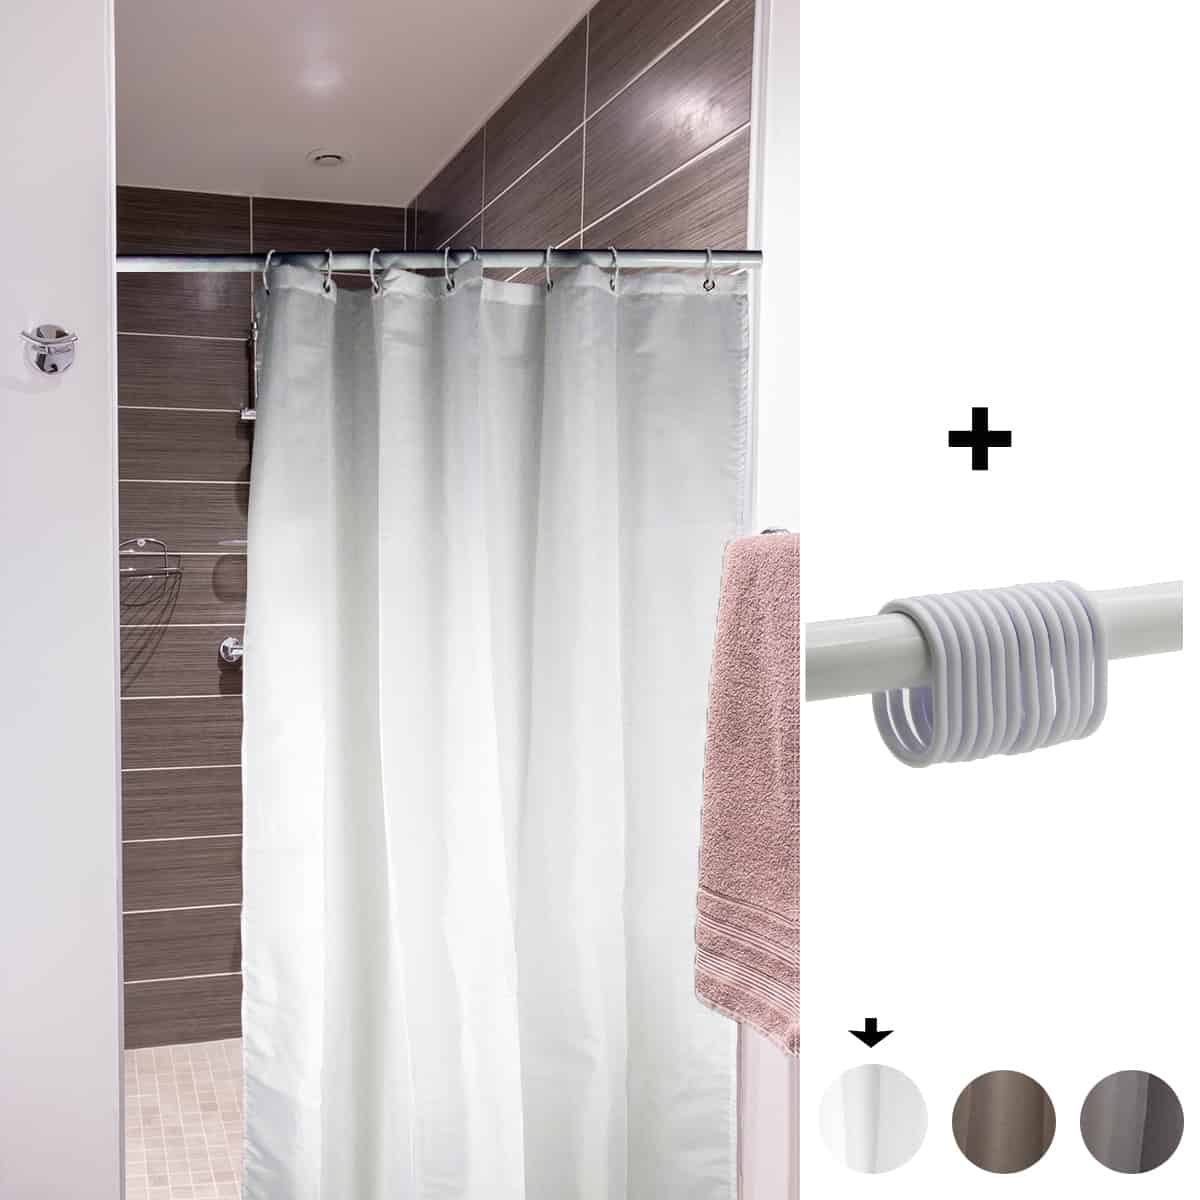 mildew resistant small stall shower curtain liner narrow size 48 w x 72 h inch 8 matching rings